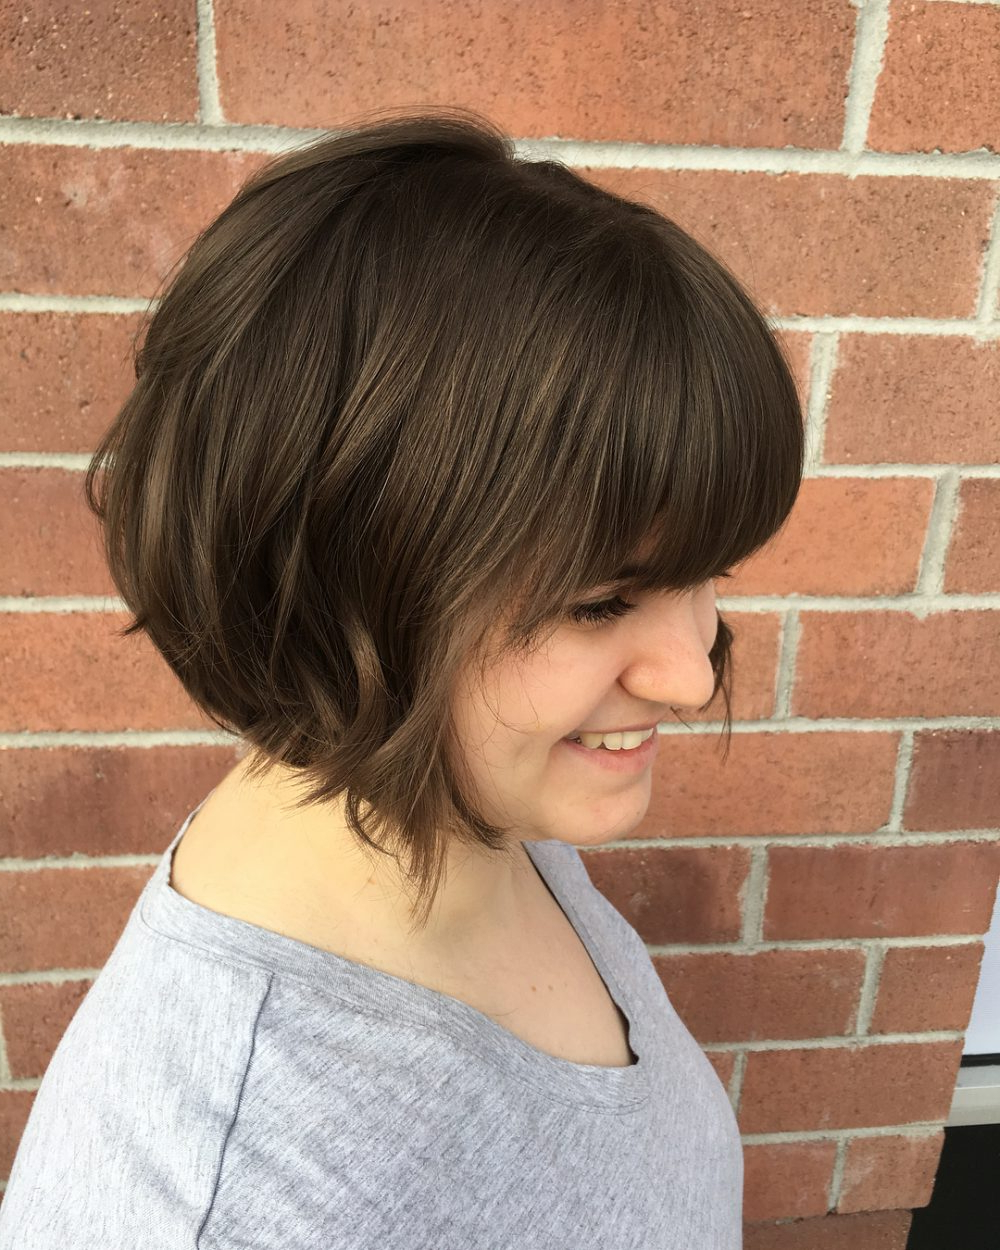 34 Greatest Short Haircuts And Hairstyles For Thick Hair For 2018 Pertaining To Short Hairstyles For Thick Hair Long Face (View 6 of 25)